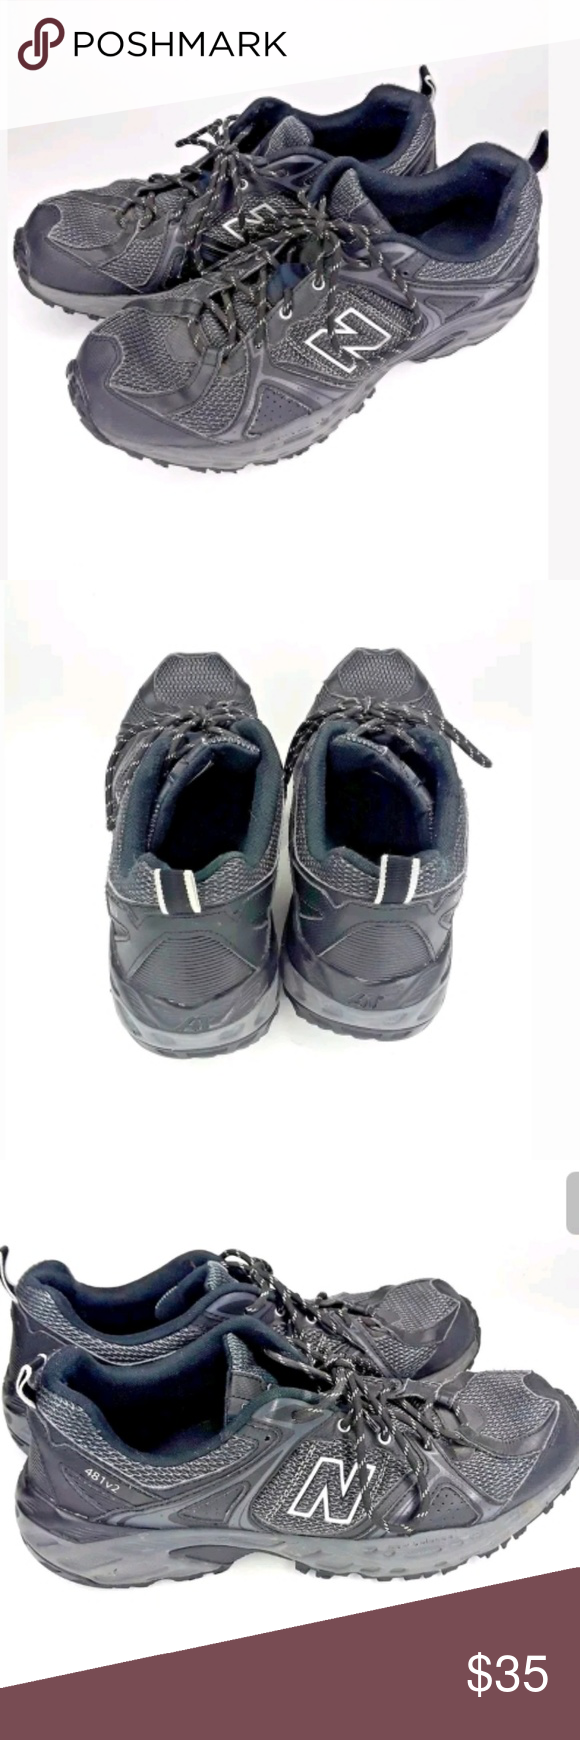 Gray TRAIL RUNNING SHOES